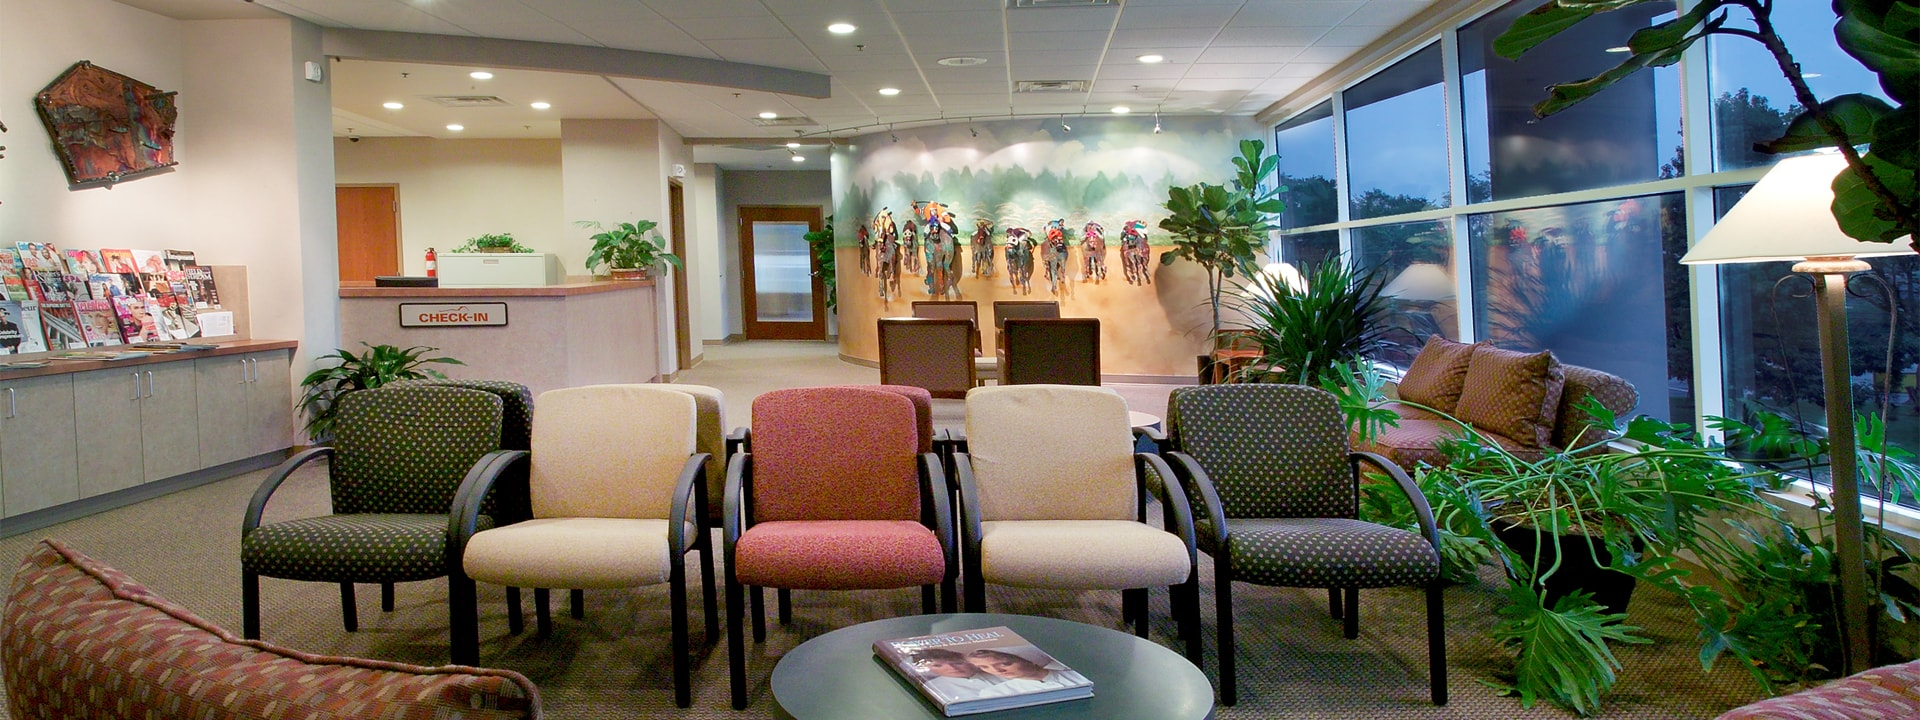 Bluegrass Dermatology Lexinton KY Office